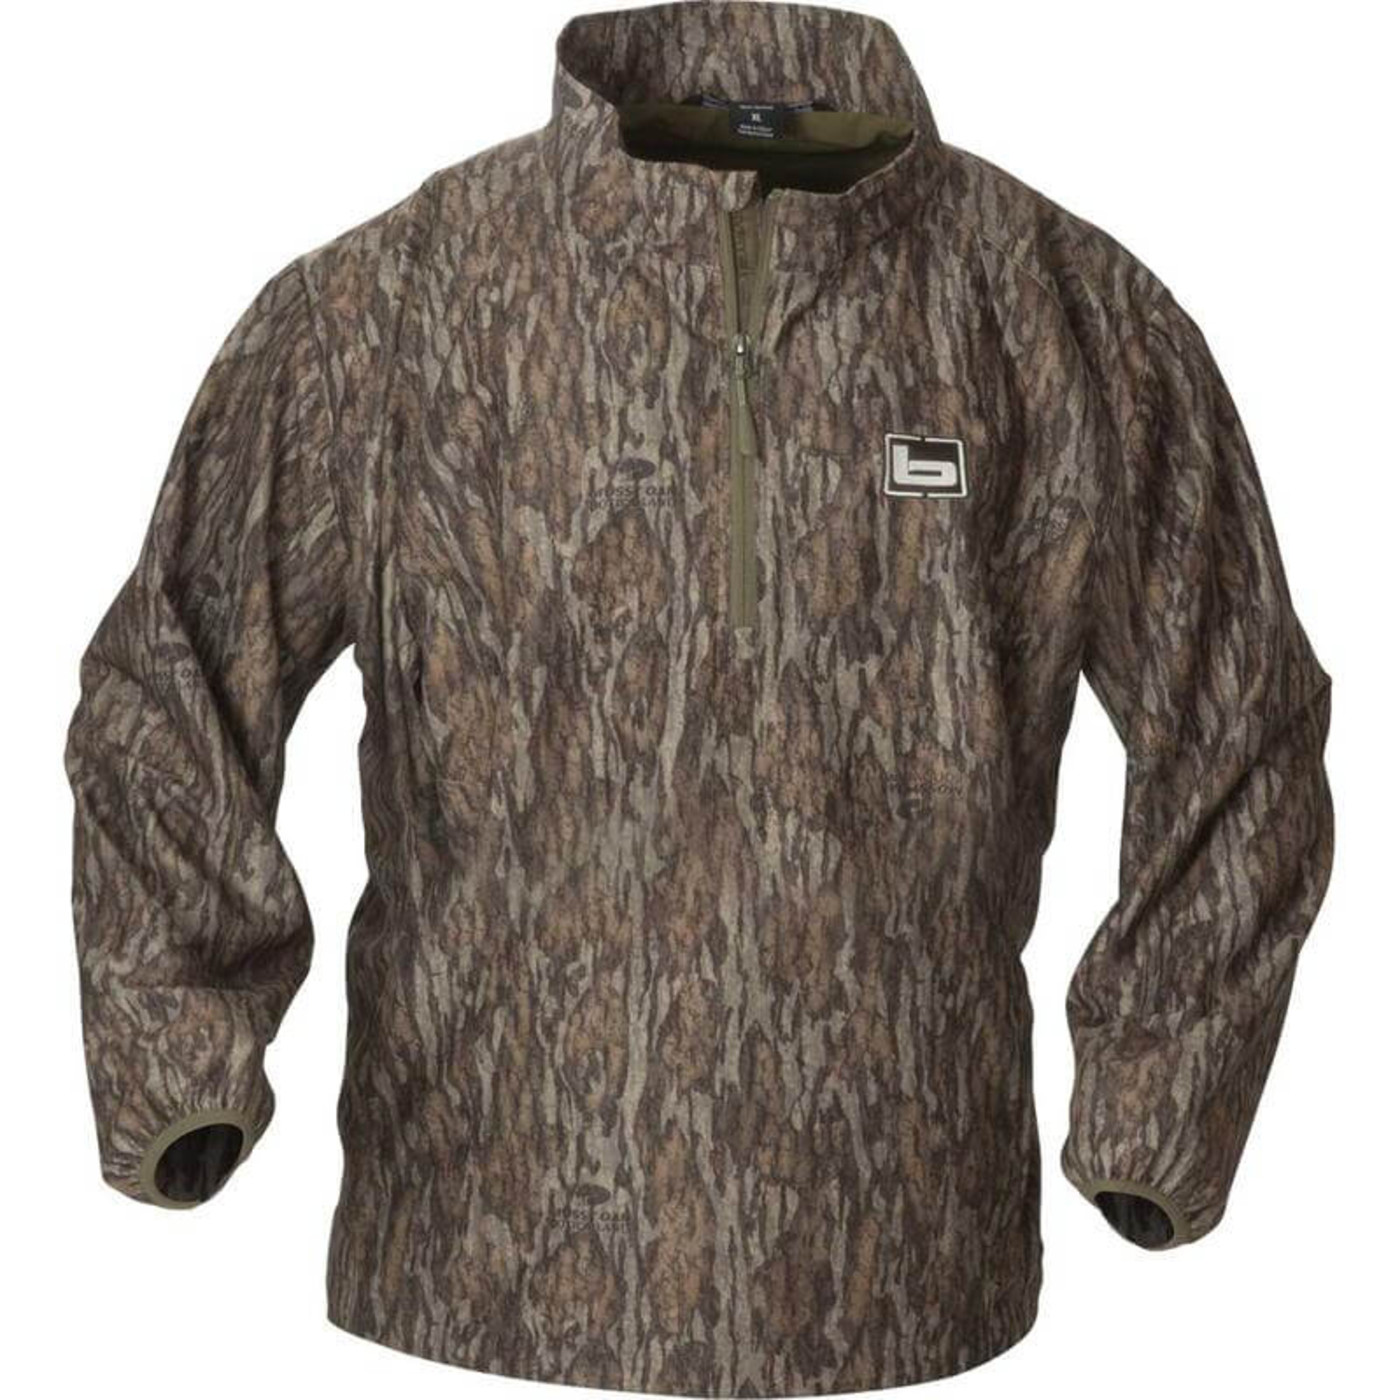 Banded Windproof Pullover in Mossy Oak Bottomland Color